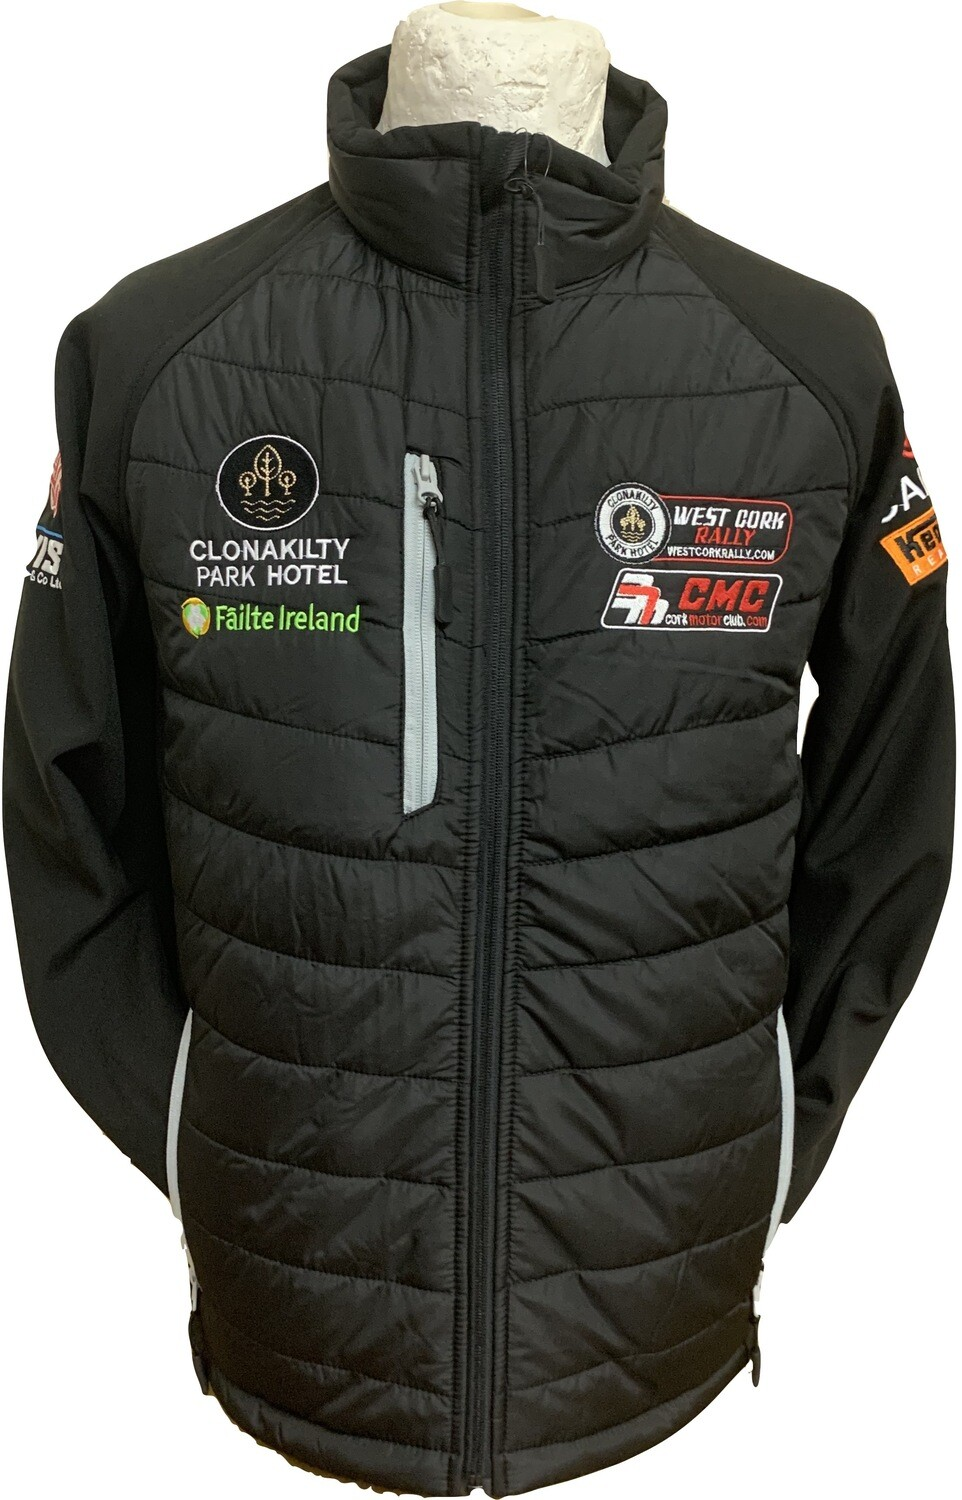 West Cork International Rally Soft Shell/Puffer